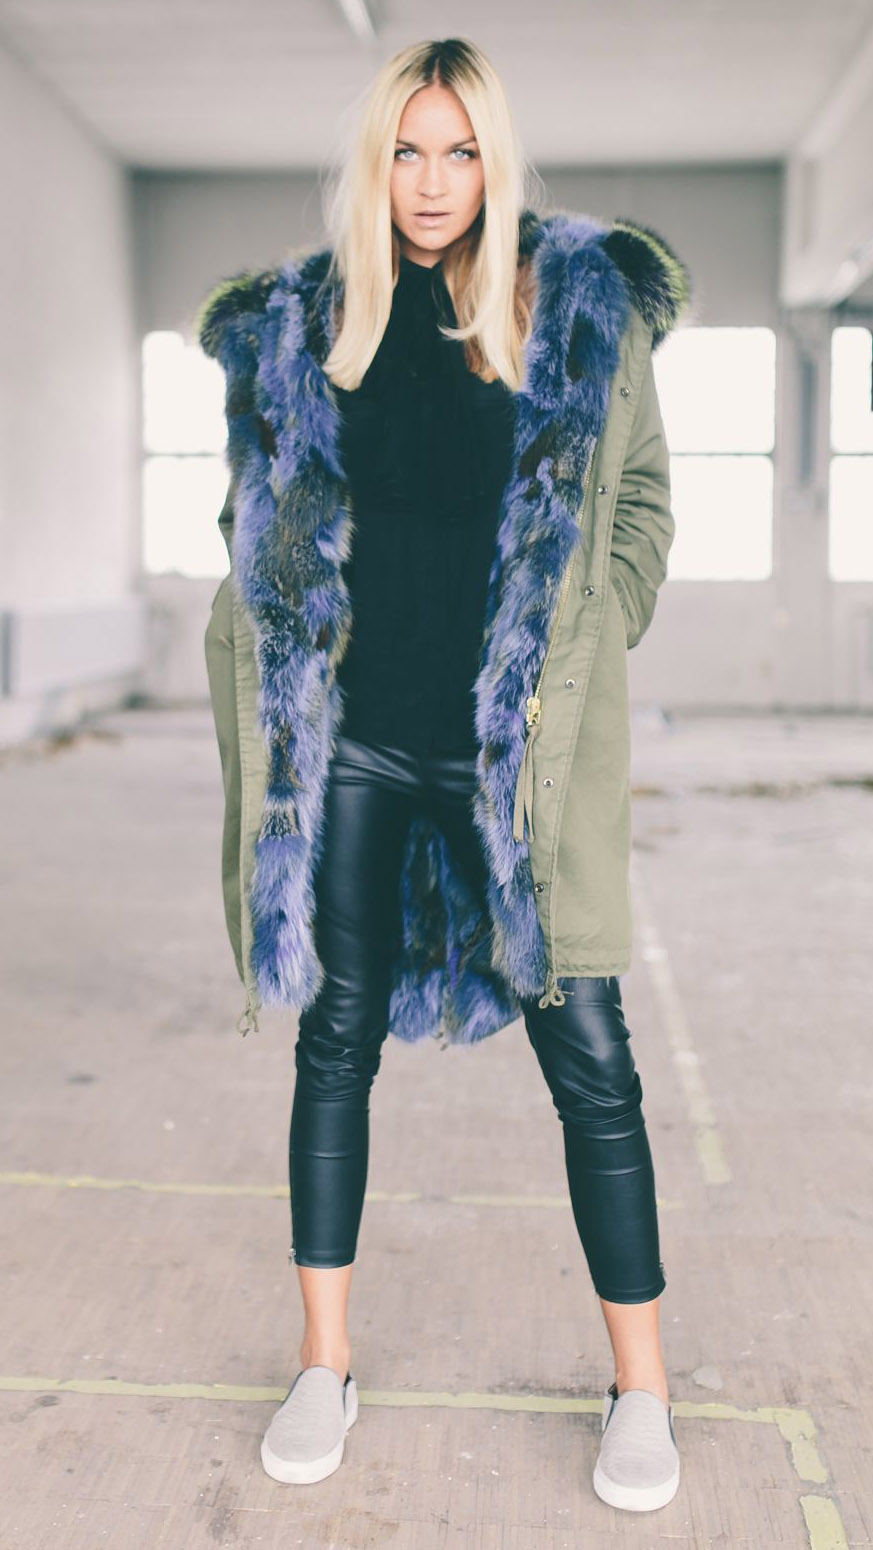 black-leggings-white-shoe-sneakers-blonde-colored-fur-trim-blonde-green-olive-jacket-coat-parka-fall-winter-outfit-lunch.jpg